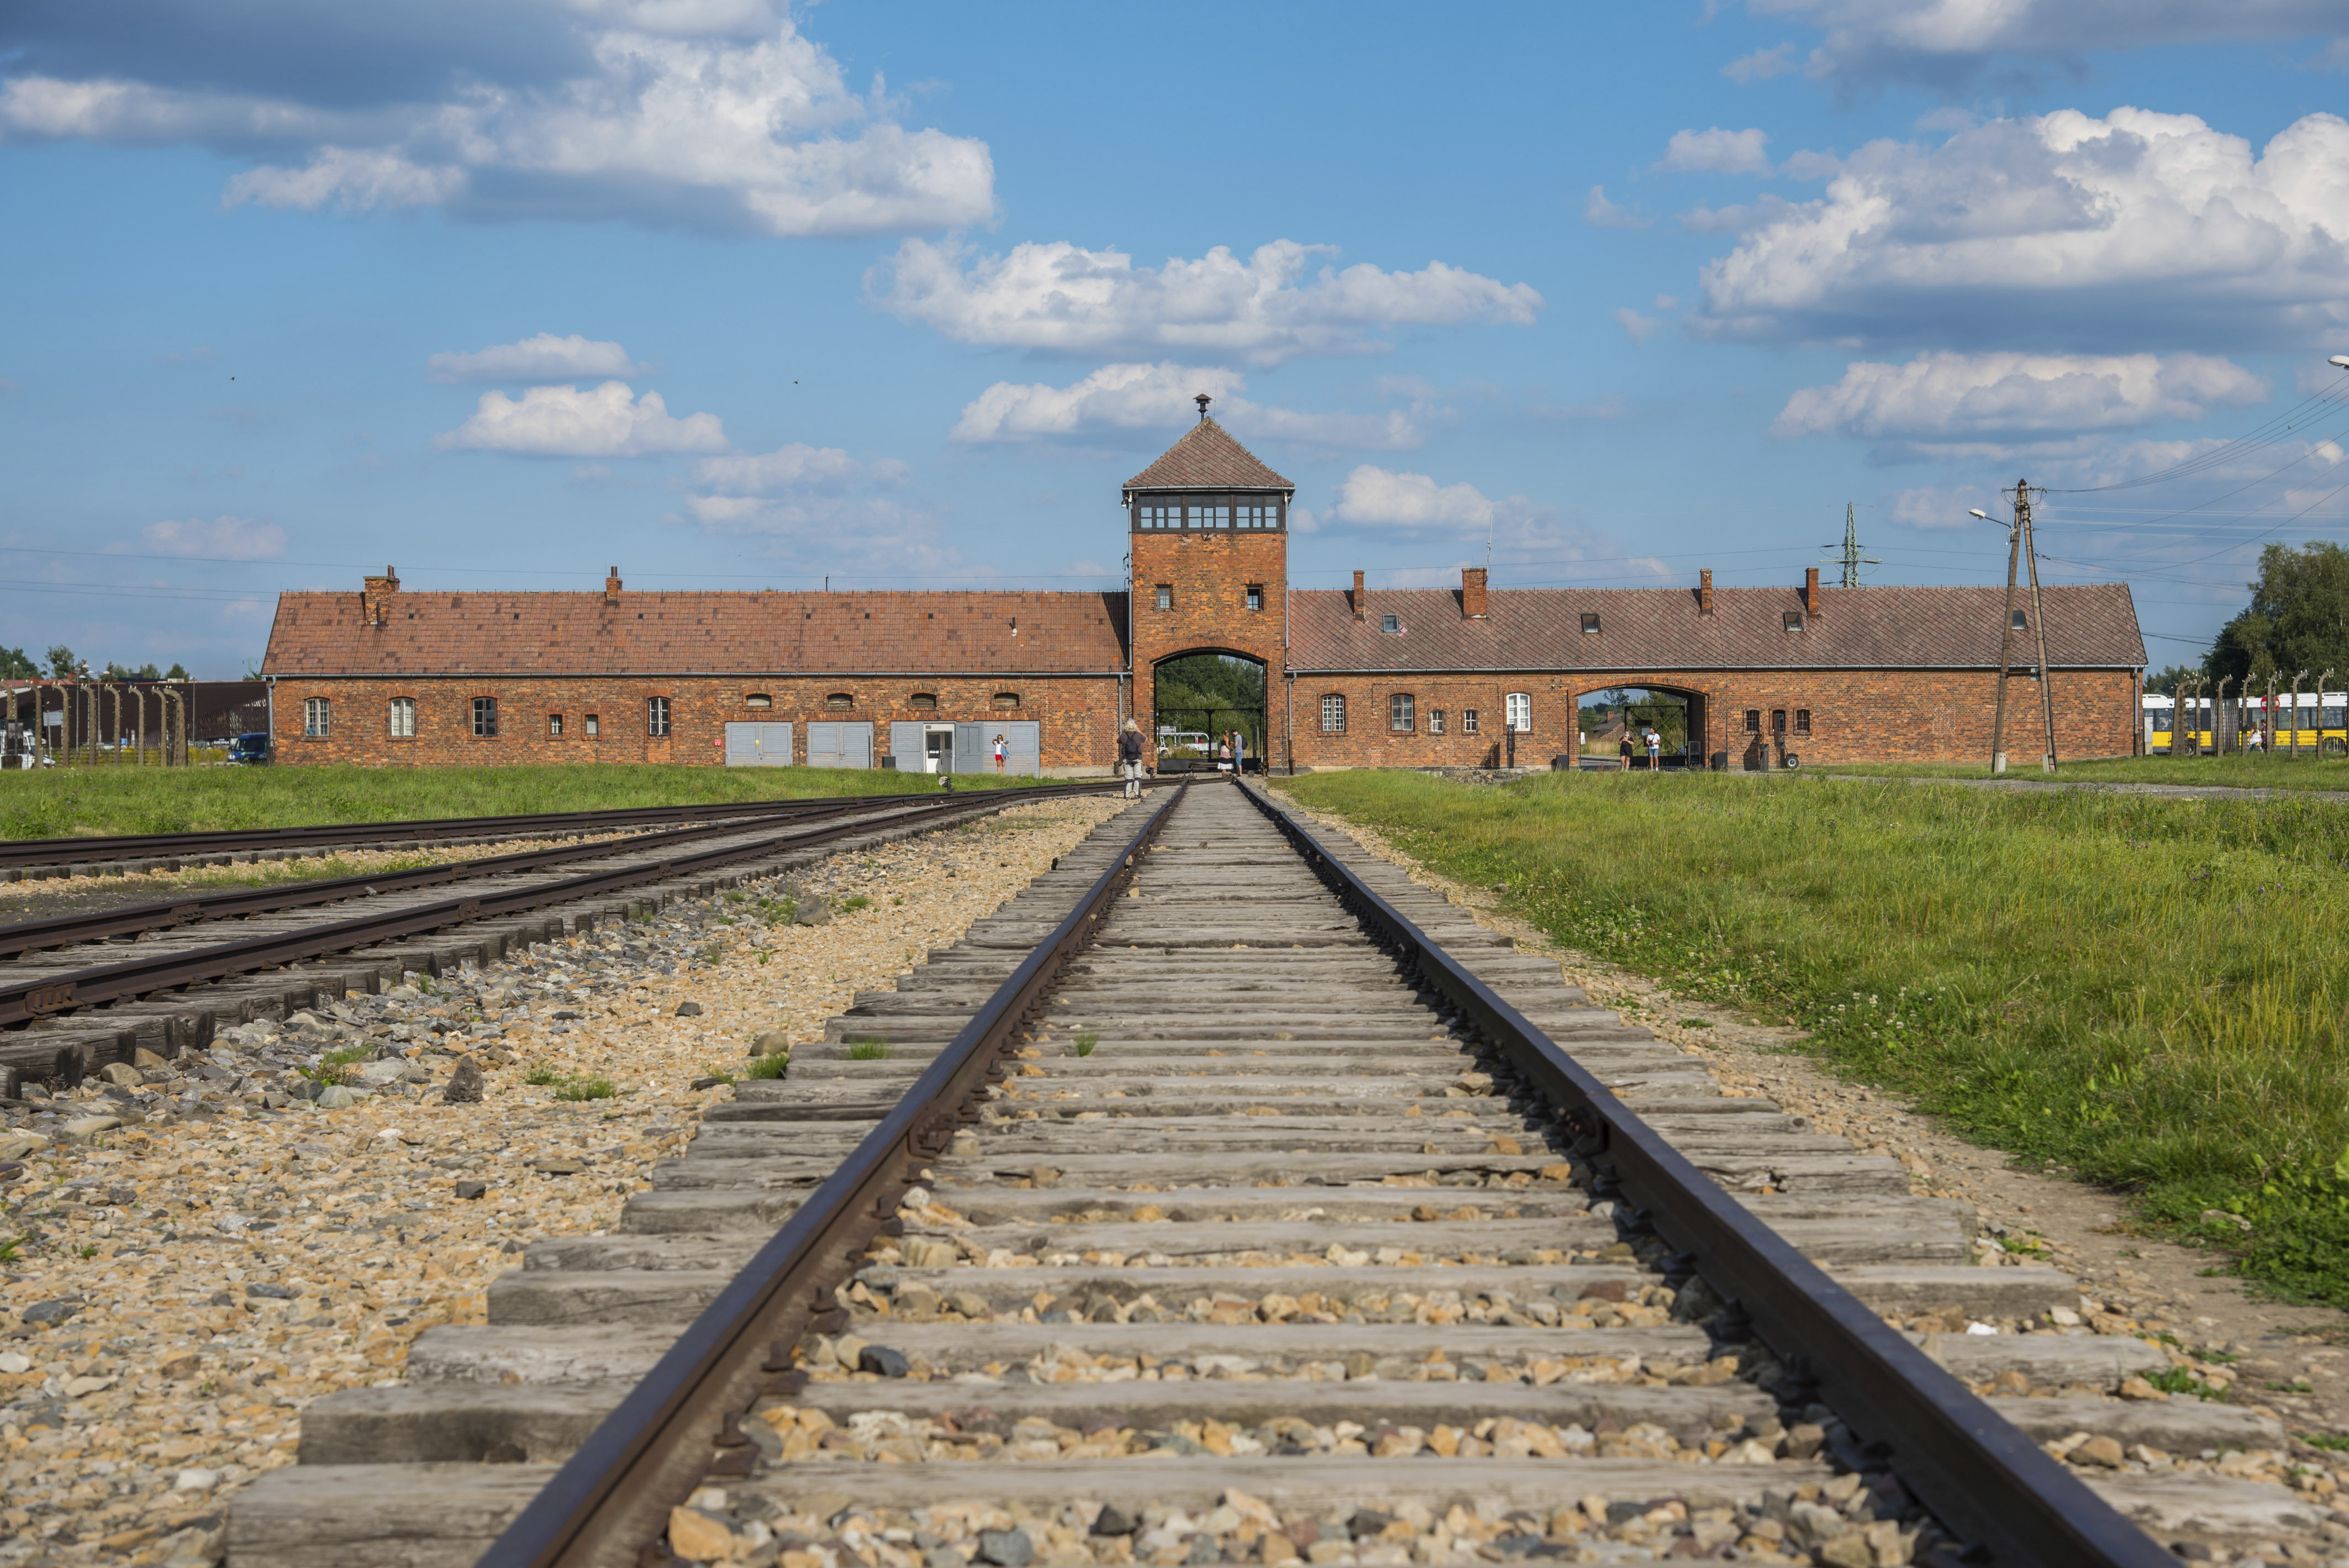 Almost a Quarter of Young Americans Think The Holocaust Is a Myth or Exaggerated